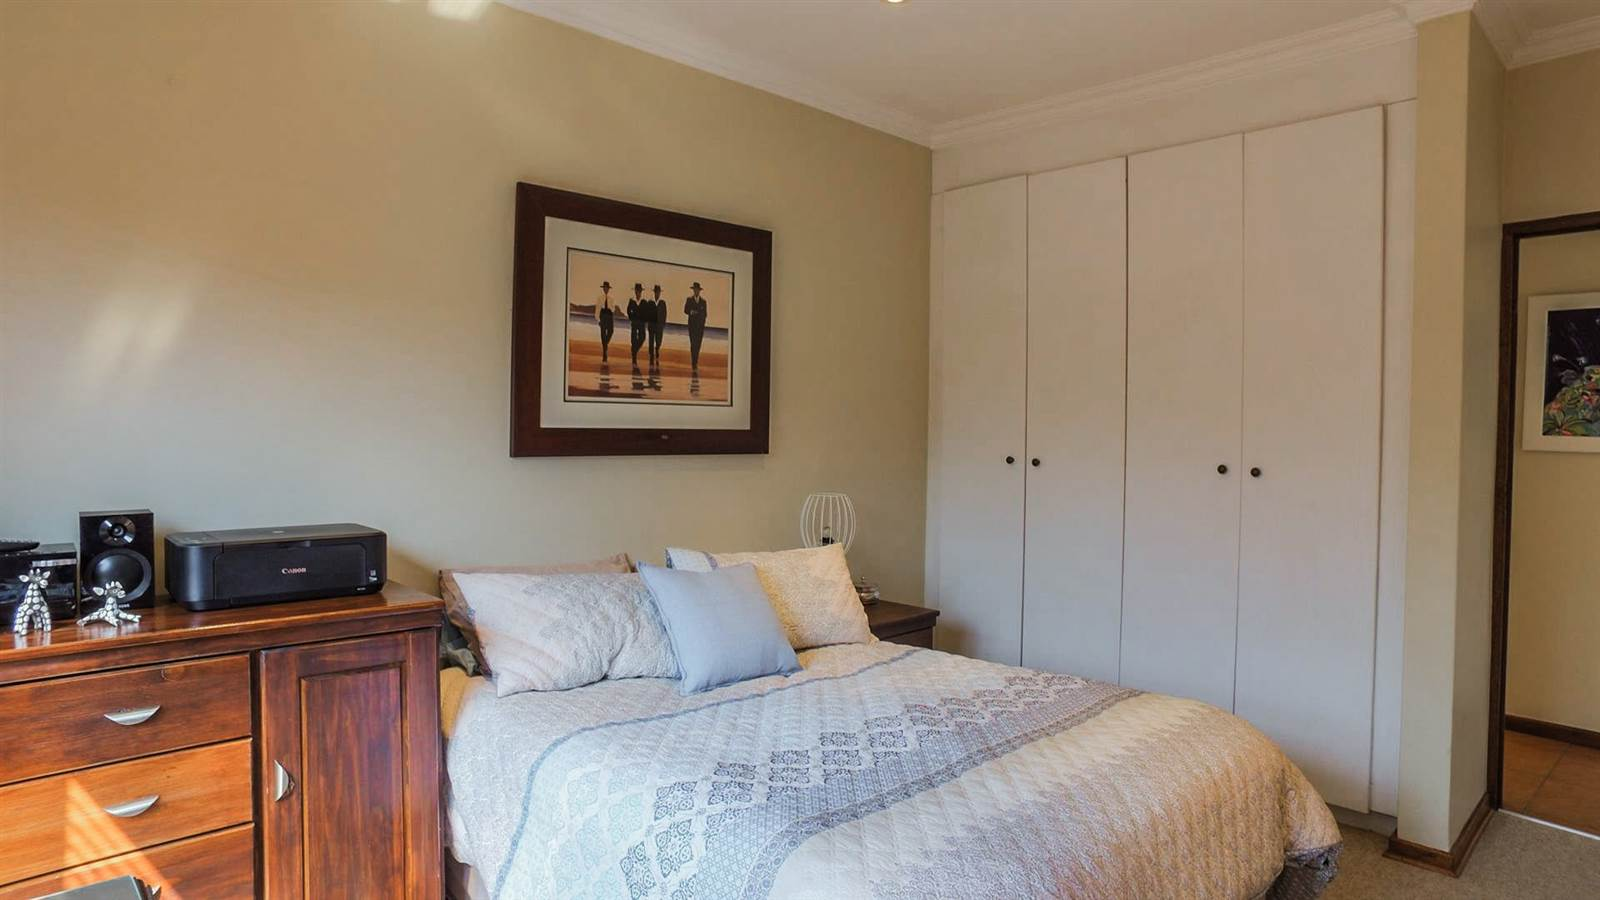 4 Bedroom Townhouse for sale in Mulbarton ENT0067436 : photo#18